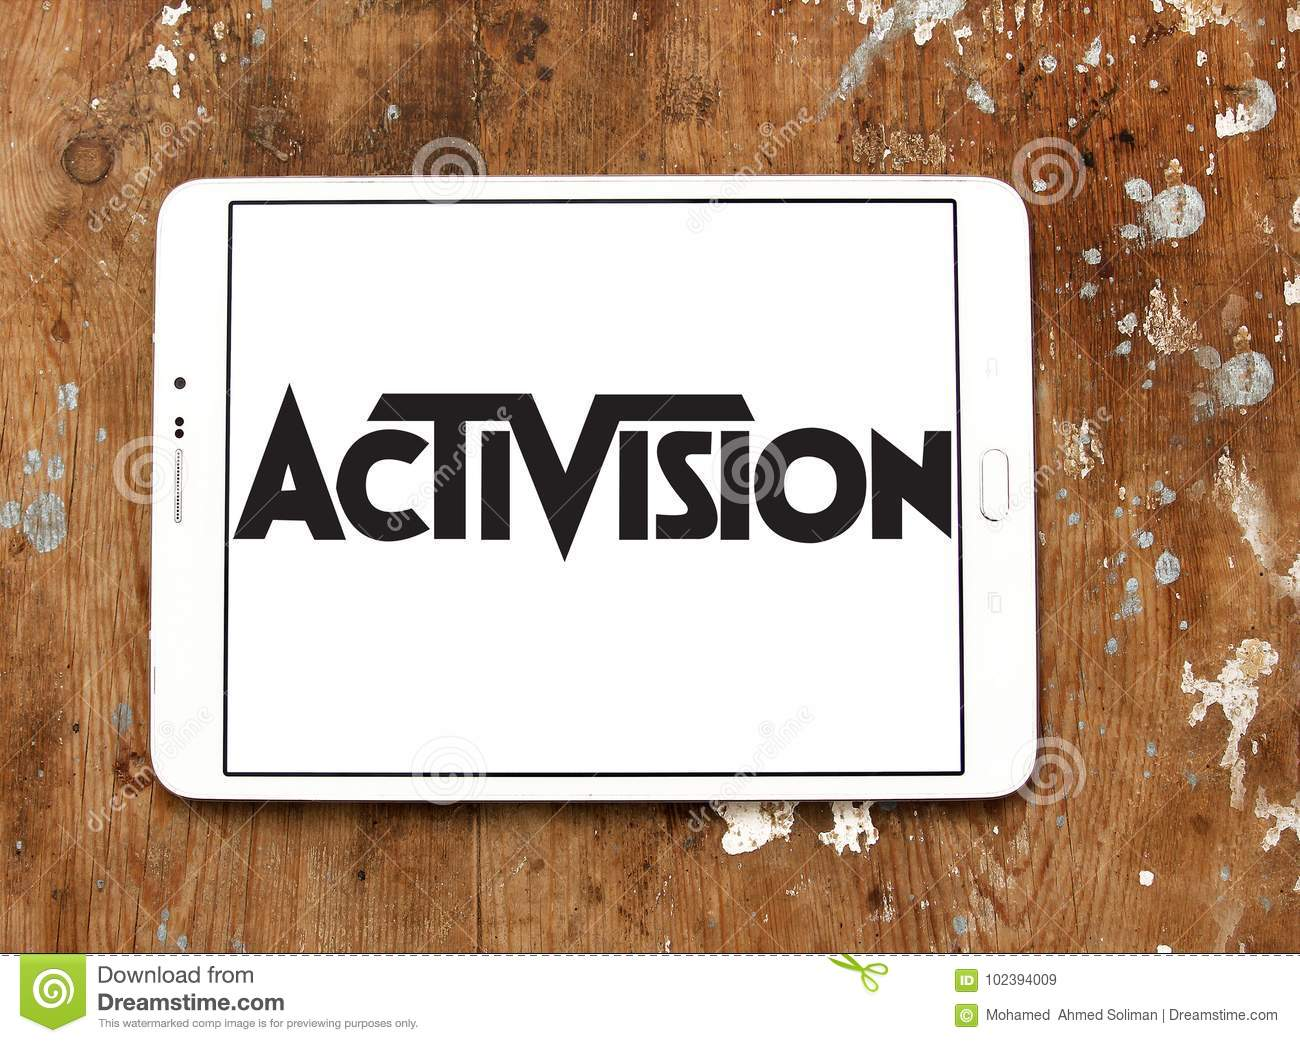 Activision company logo editorial stock image  Image of